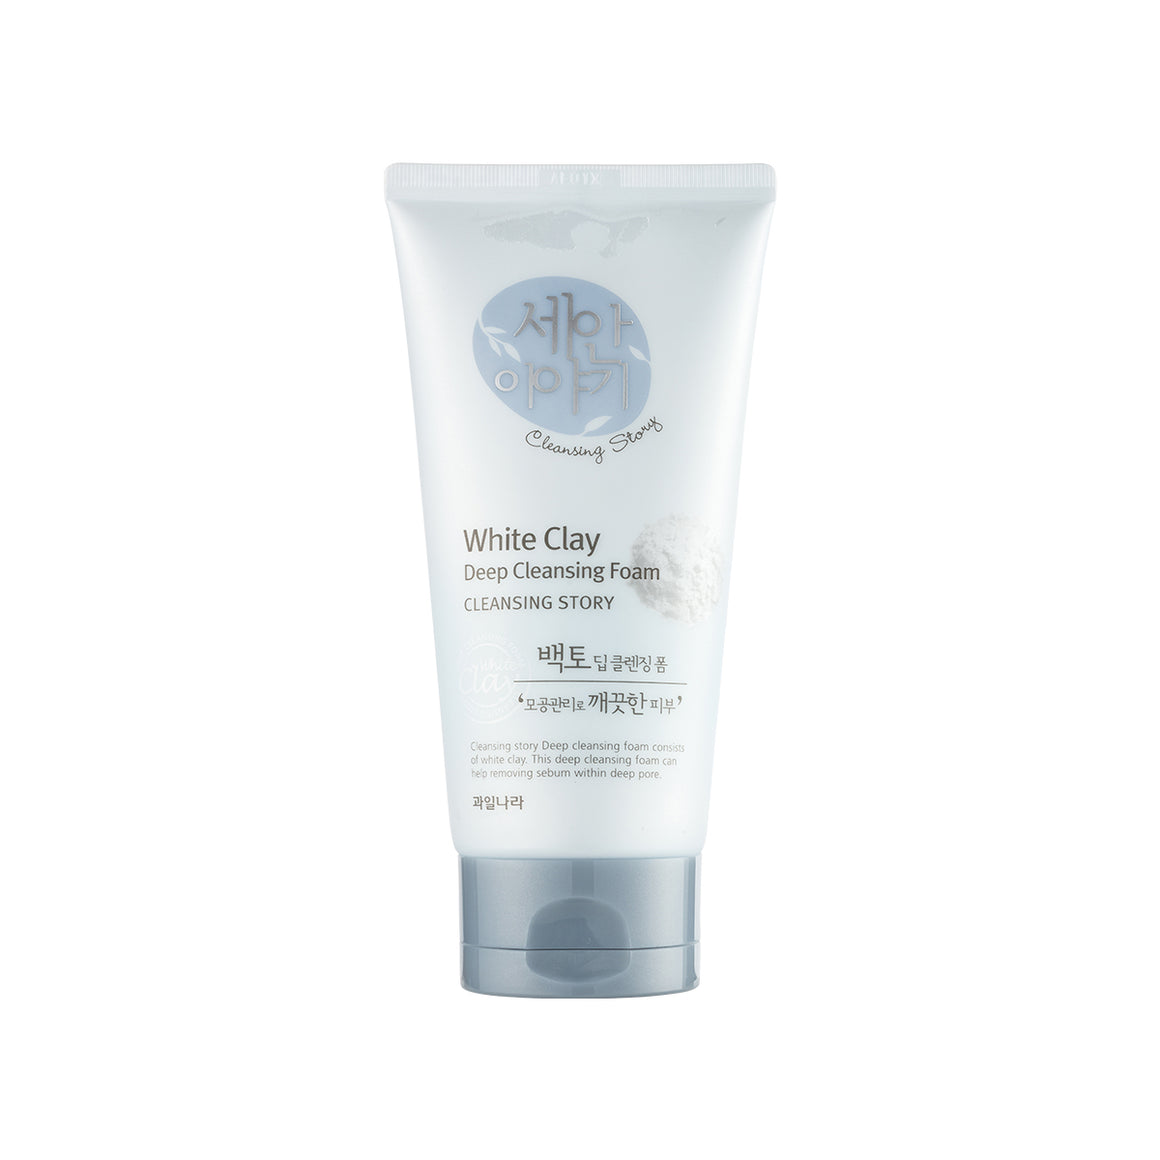 White Clay Cleansing Foam